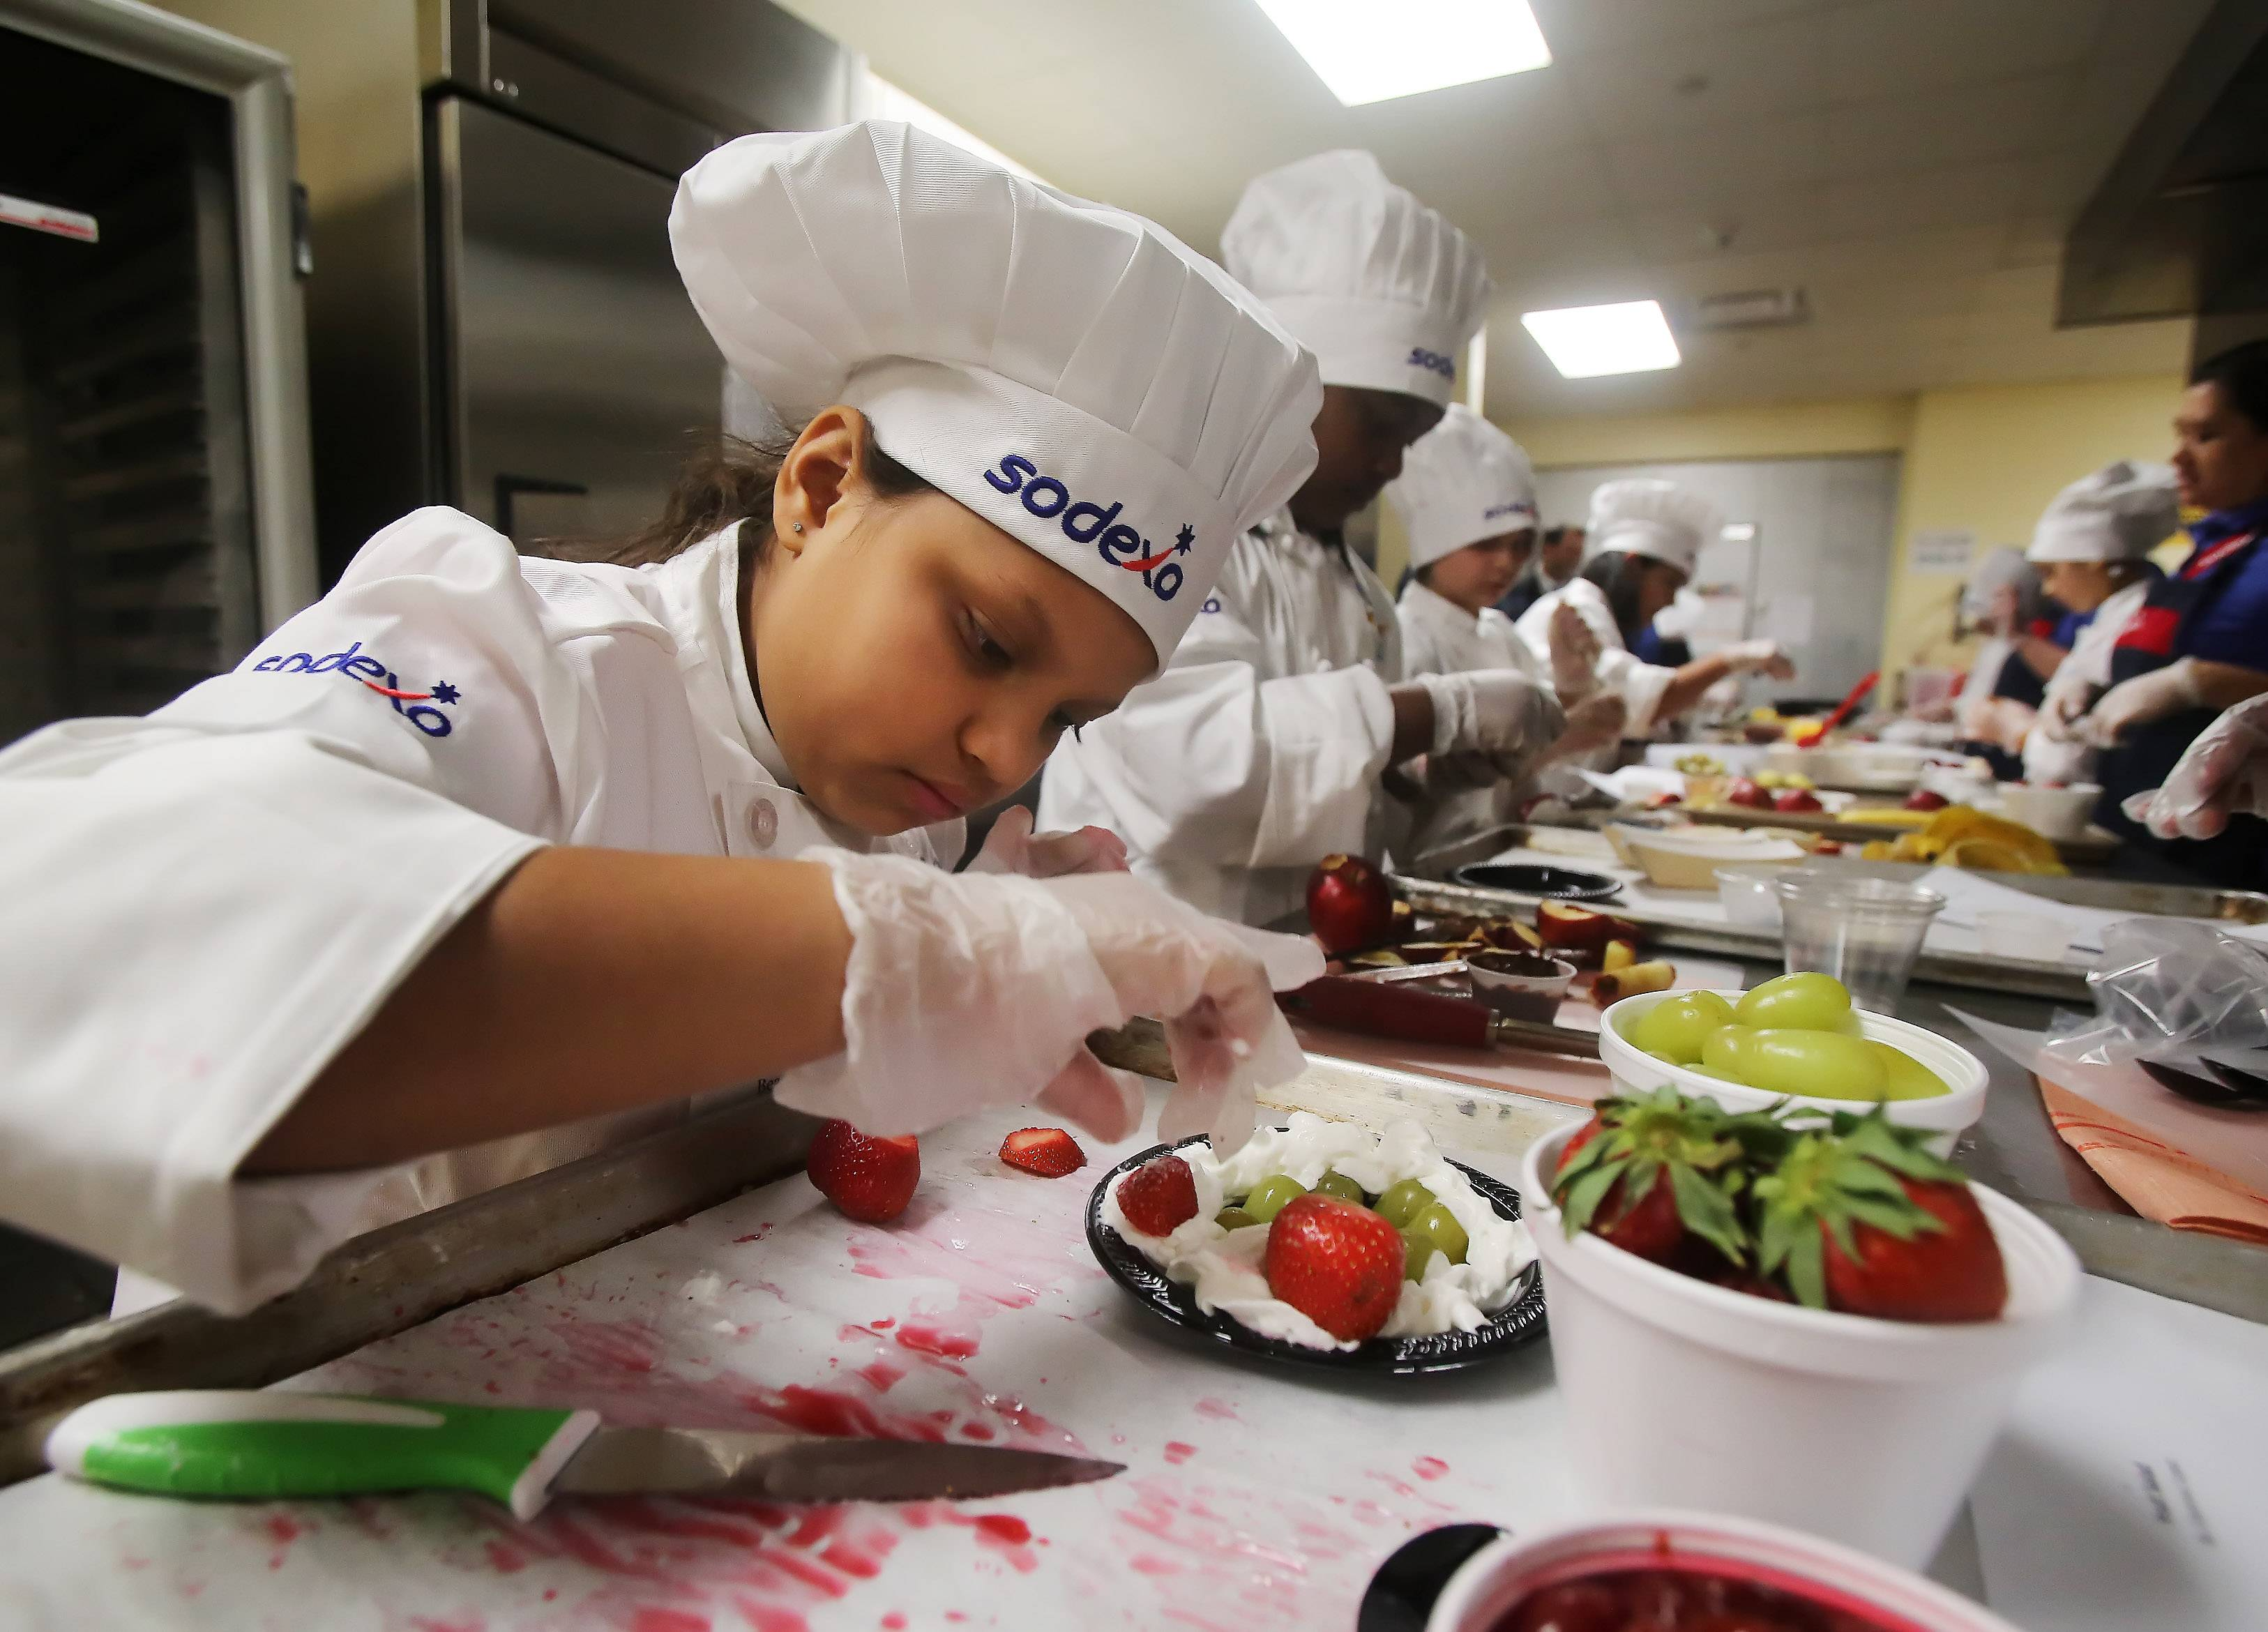 Lilyanna Lopez of Beach School in Round Lake makes a fruit salad during the Sodexo 2015 Future Chefs Challenge on Wednesday. Students created healthy snacks for judges during the competition.